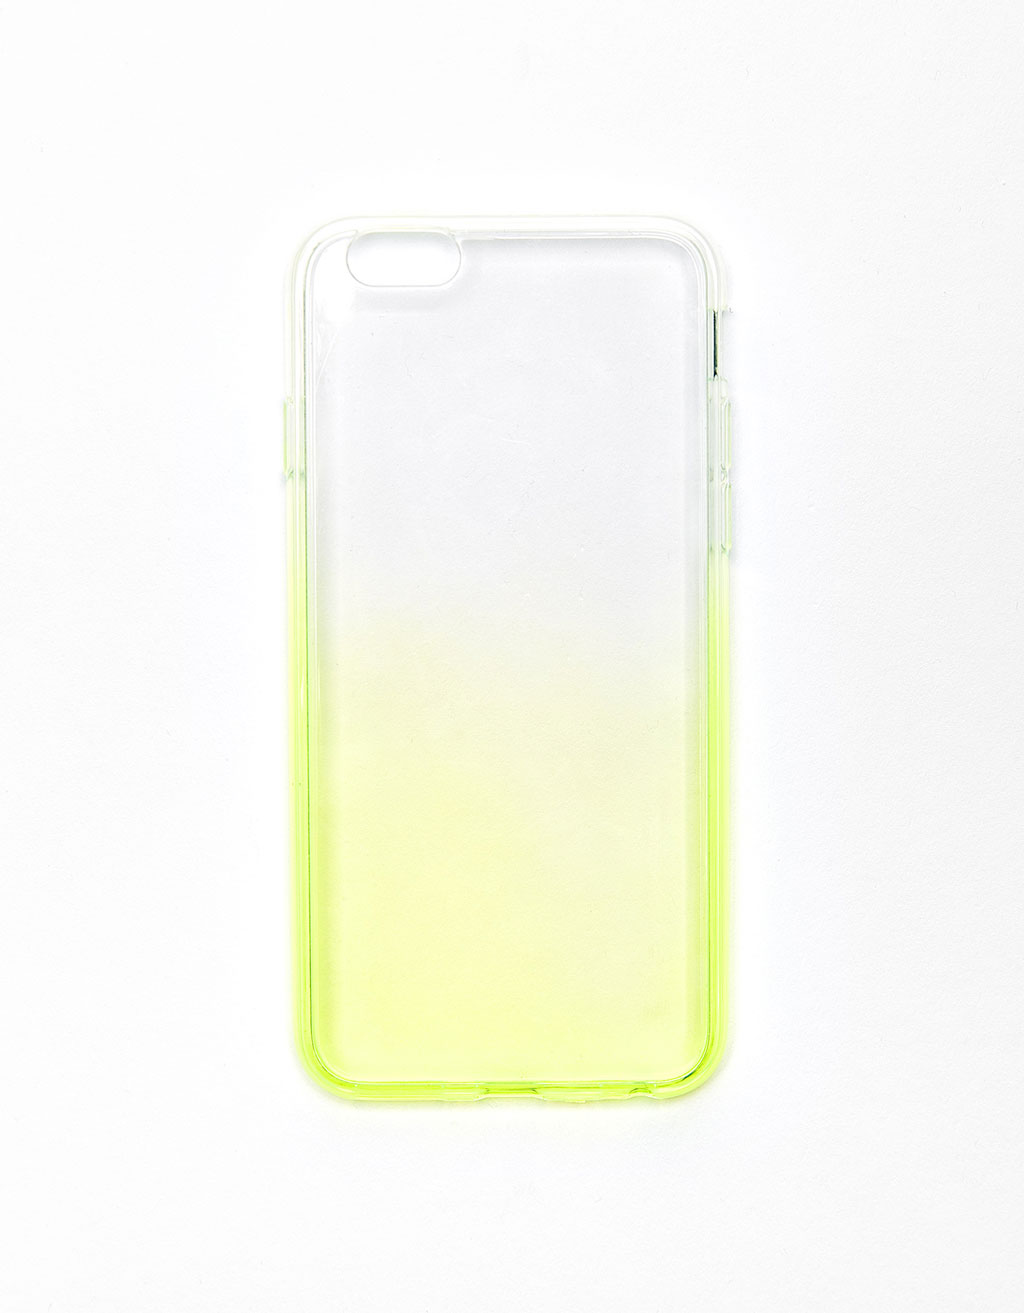 Transparent neon ombré iPhone 6 plus case